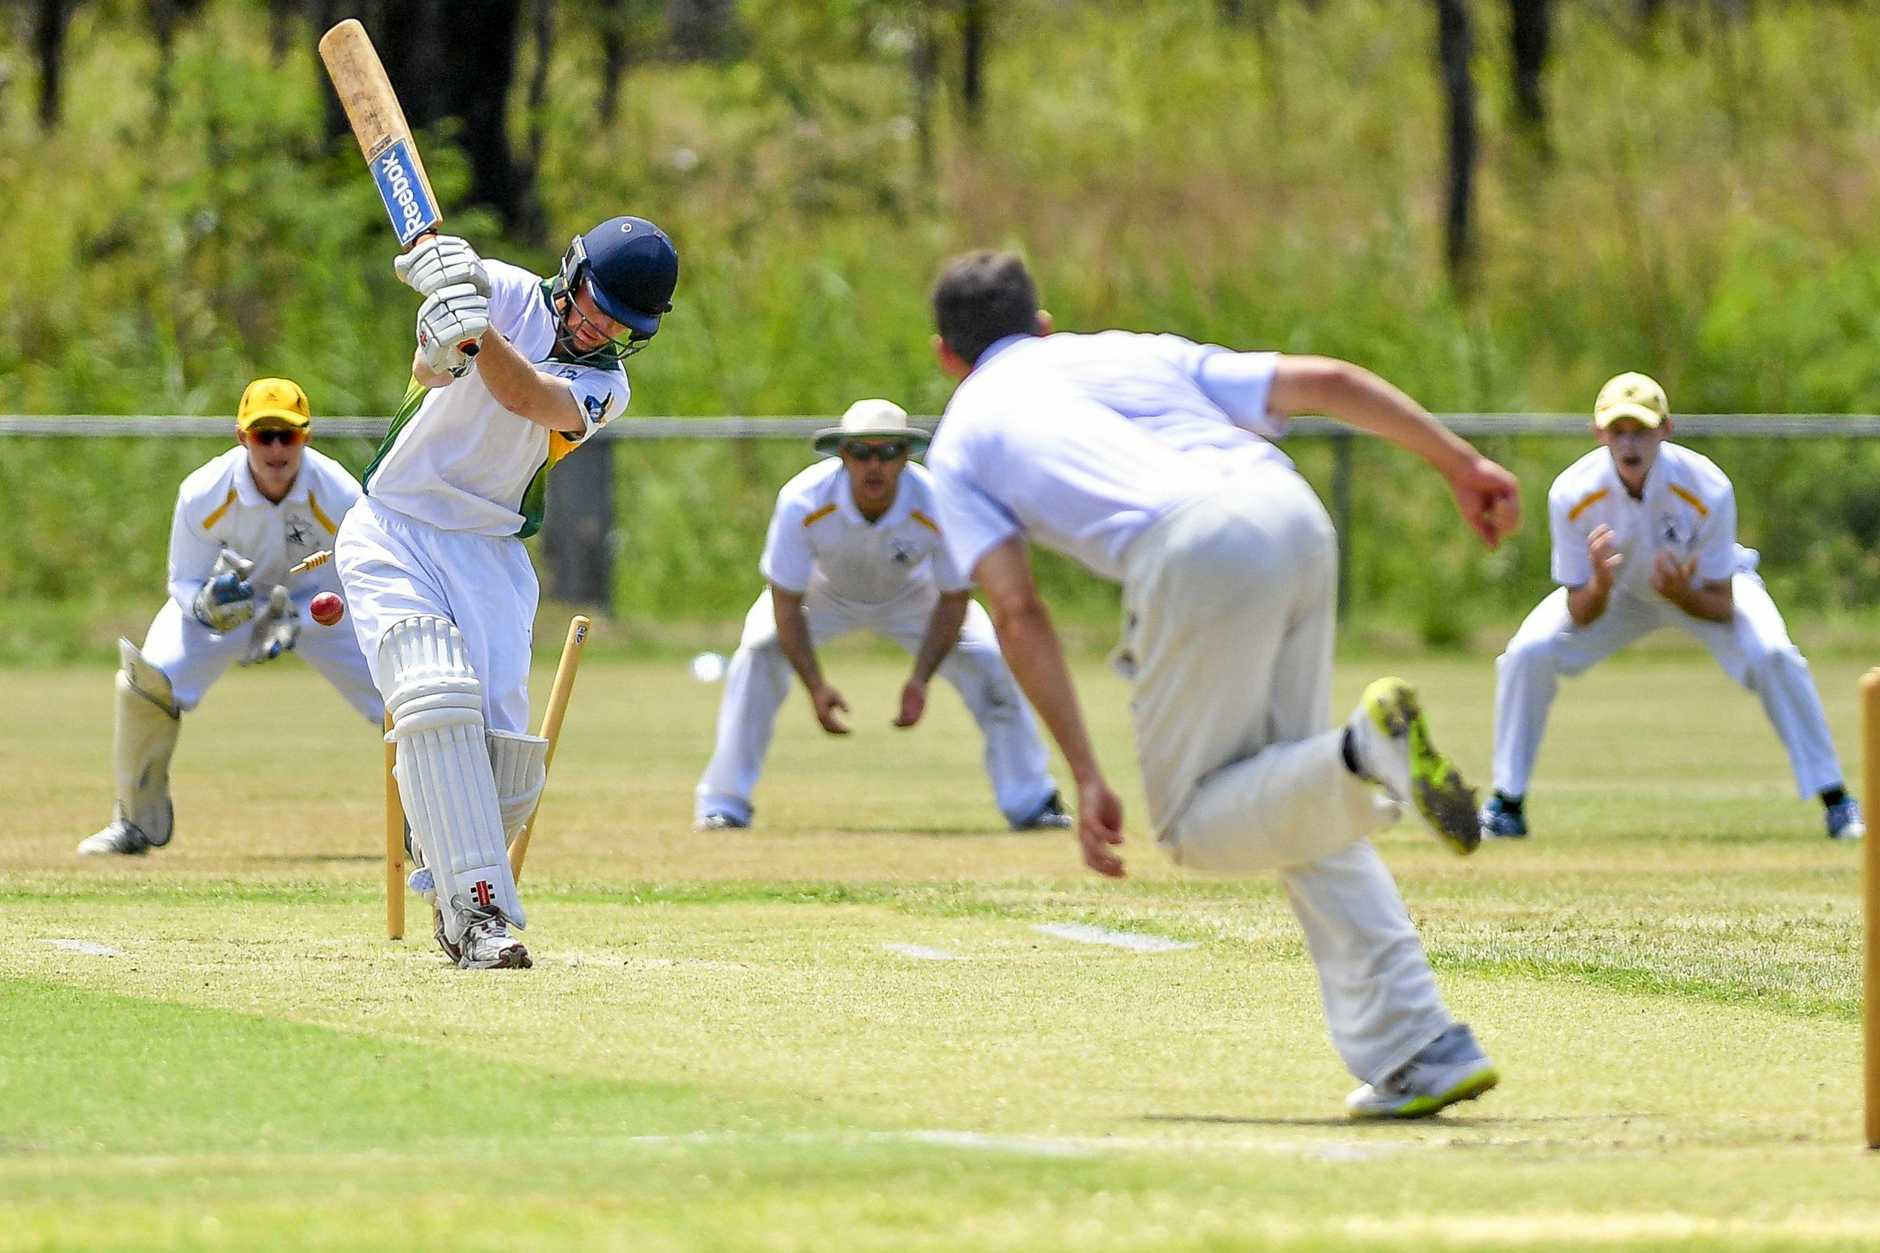 HOWZAT: BITS opening batsman Jacob Harvey is bowled by The Glen's Jason Seng in their first grand final match at Sun Valley Oval.